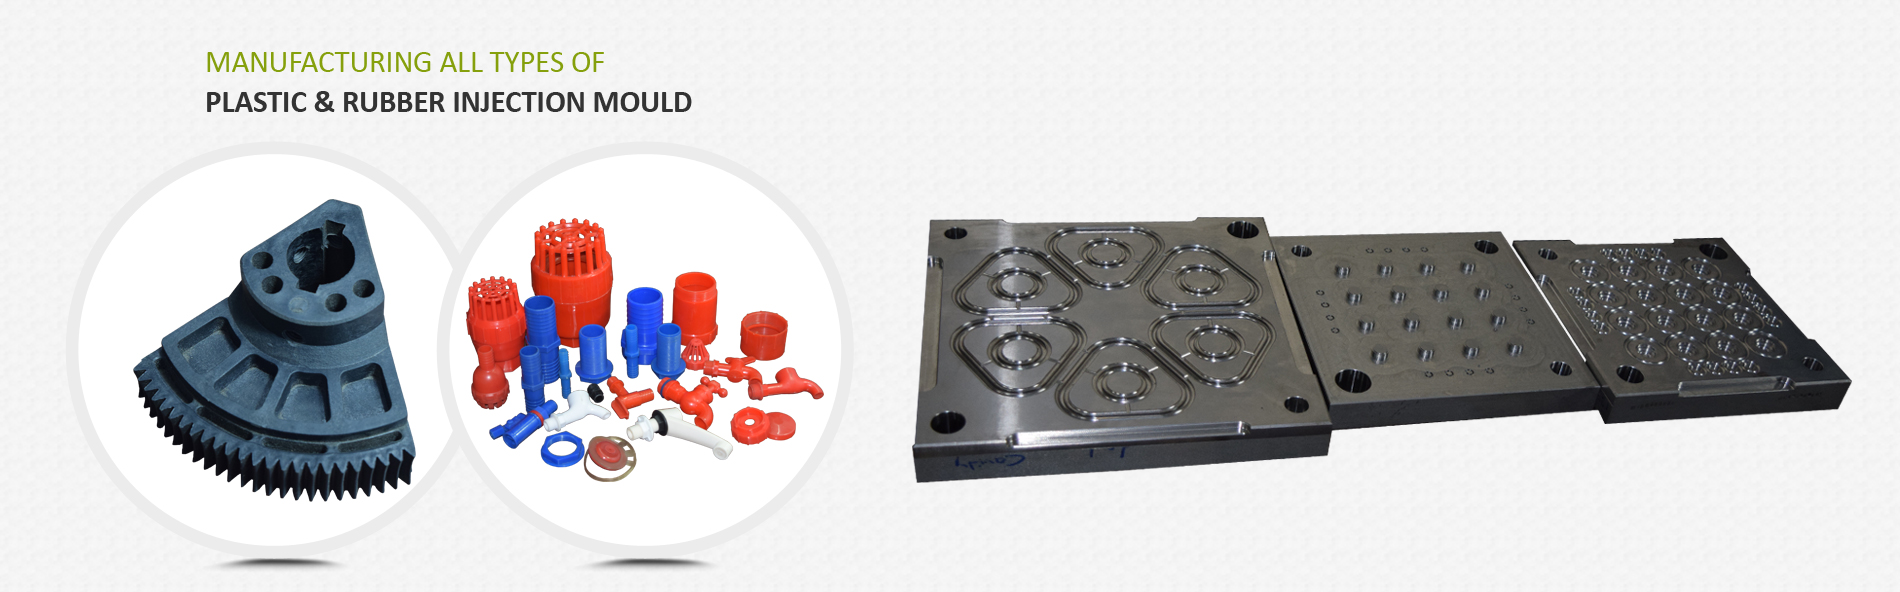 plastic mould,mold,plastic injection mould ,plastic injection moulding,mould,rubber mould,blow mould,plastic injection moulding,electronics parts mould,engineering parts mould,industrial parts mould,upvc mould,ro part mould,automotive parts mould,inline mould,membrane housing mould